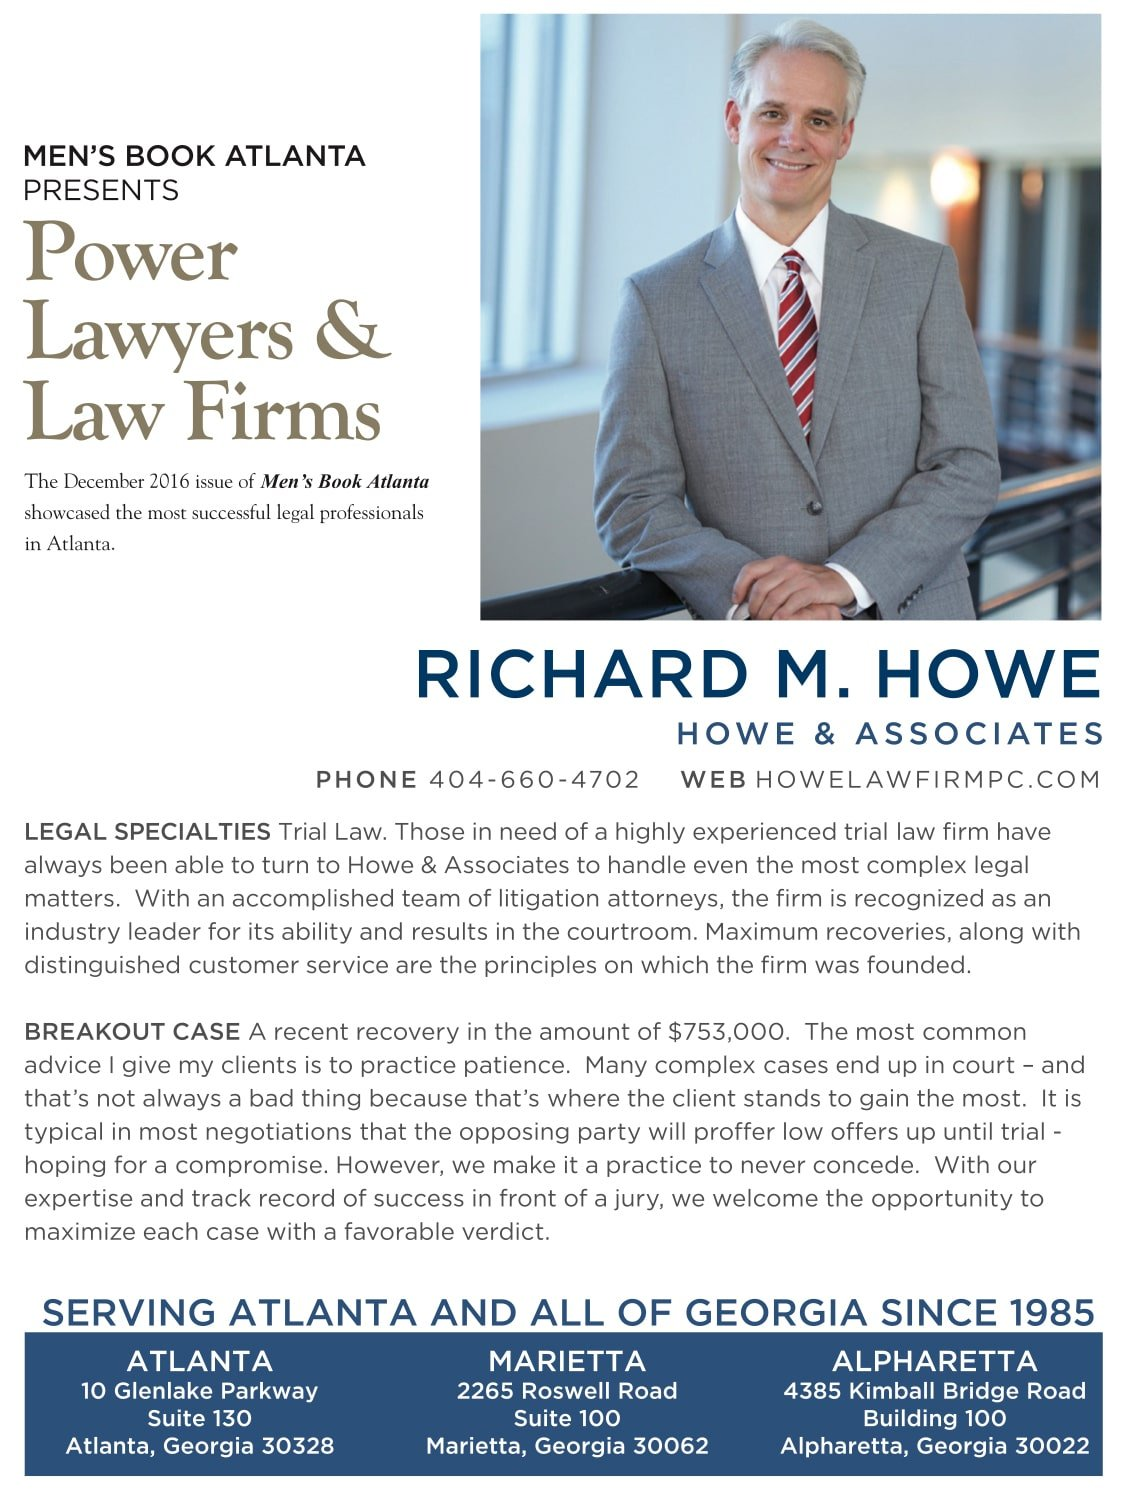 Howe Attorney at law magazine